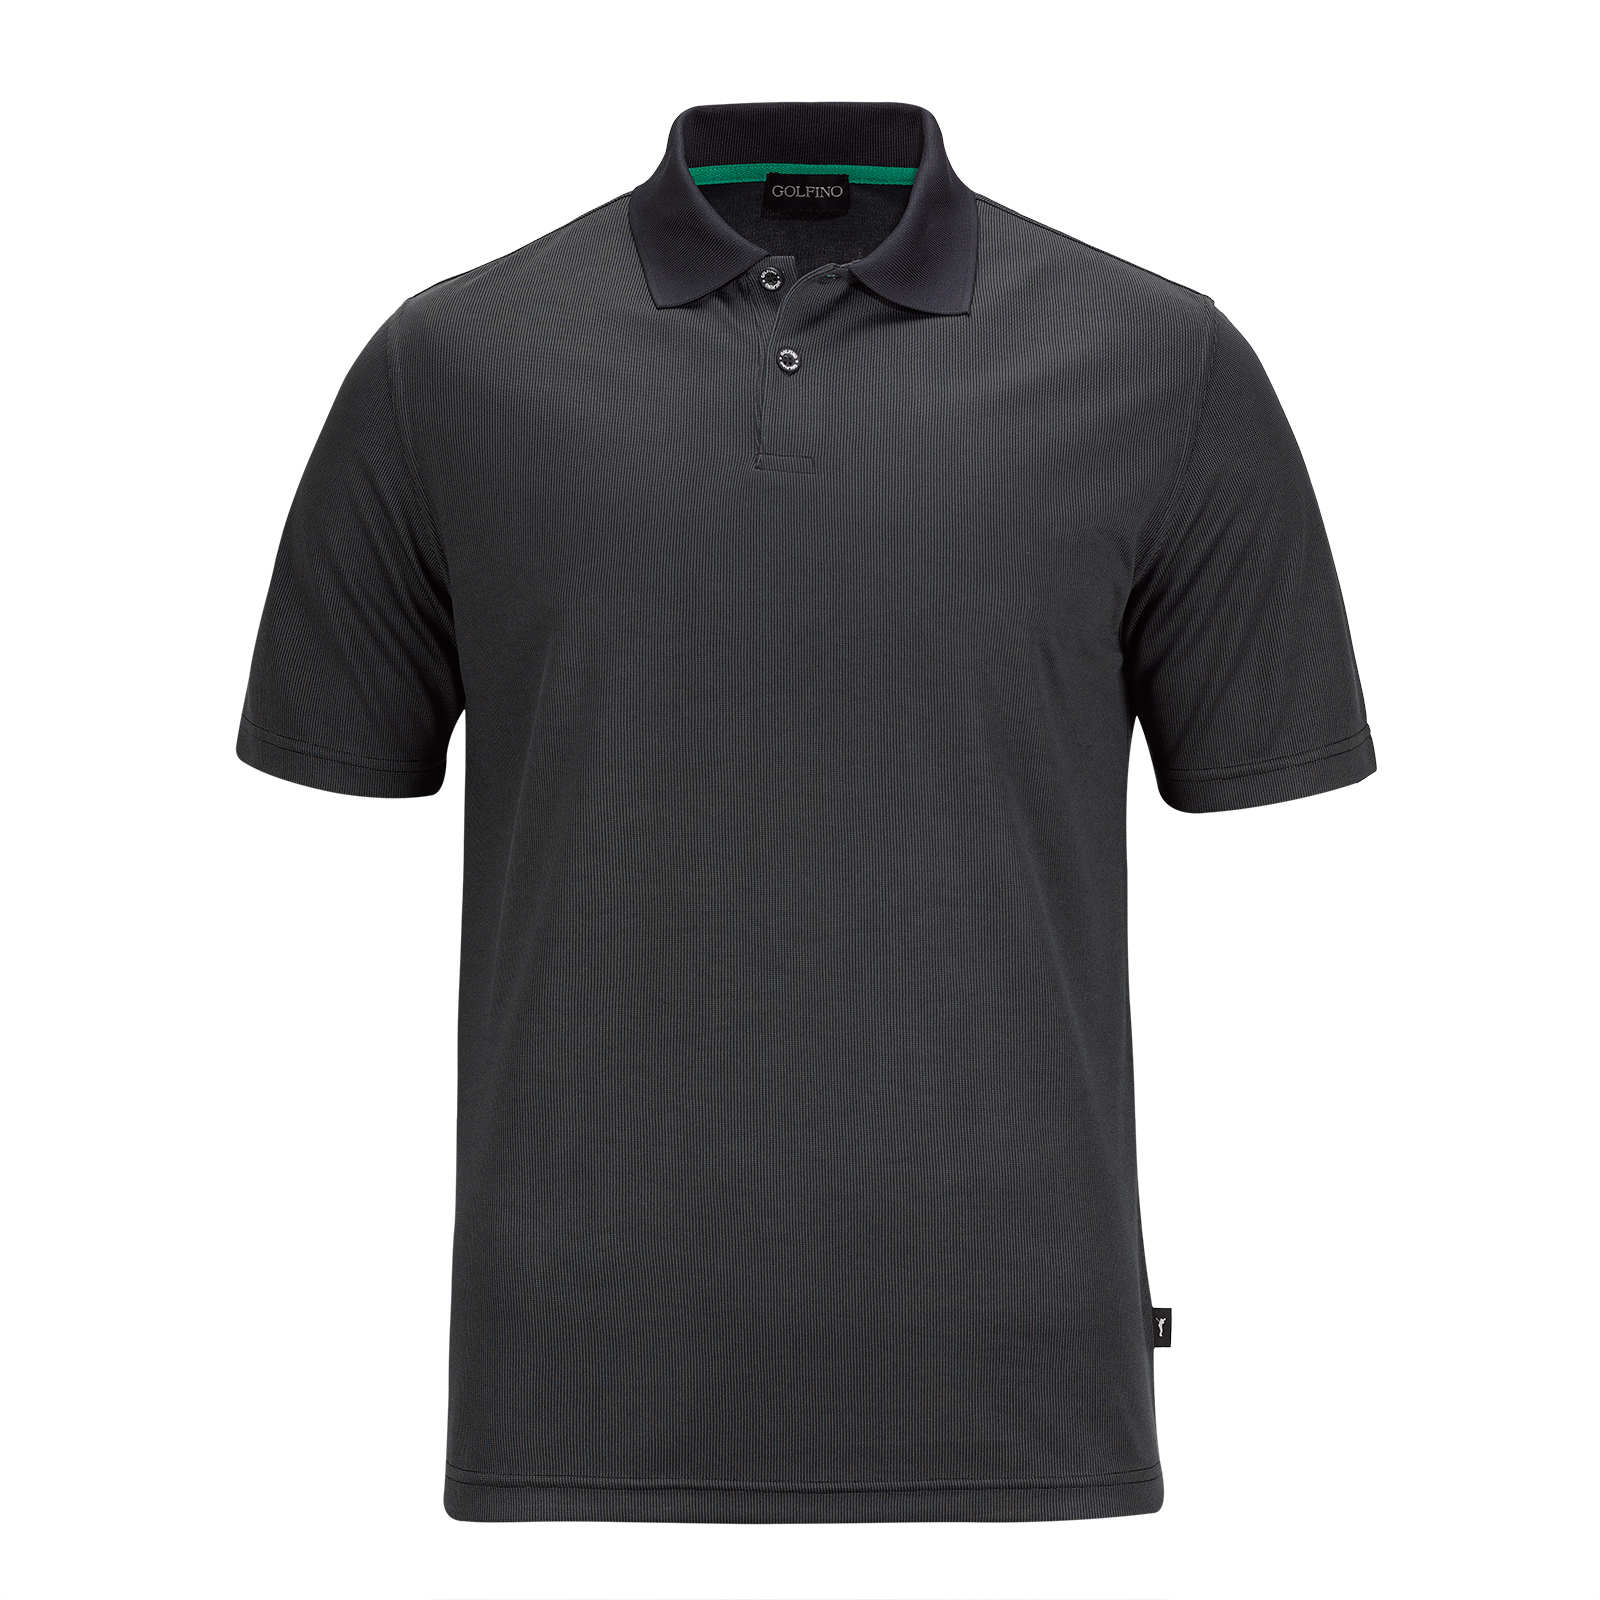 Men's short sleeve functional golf polo with moisture management